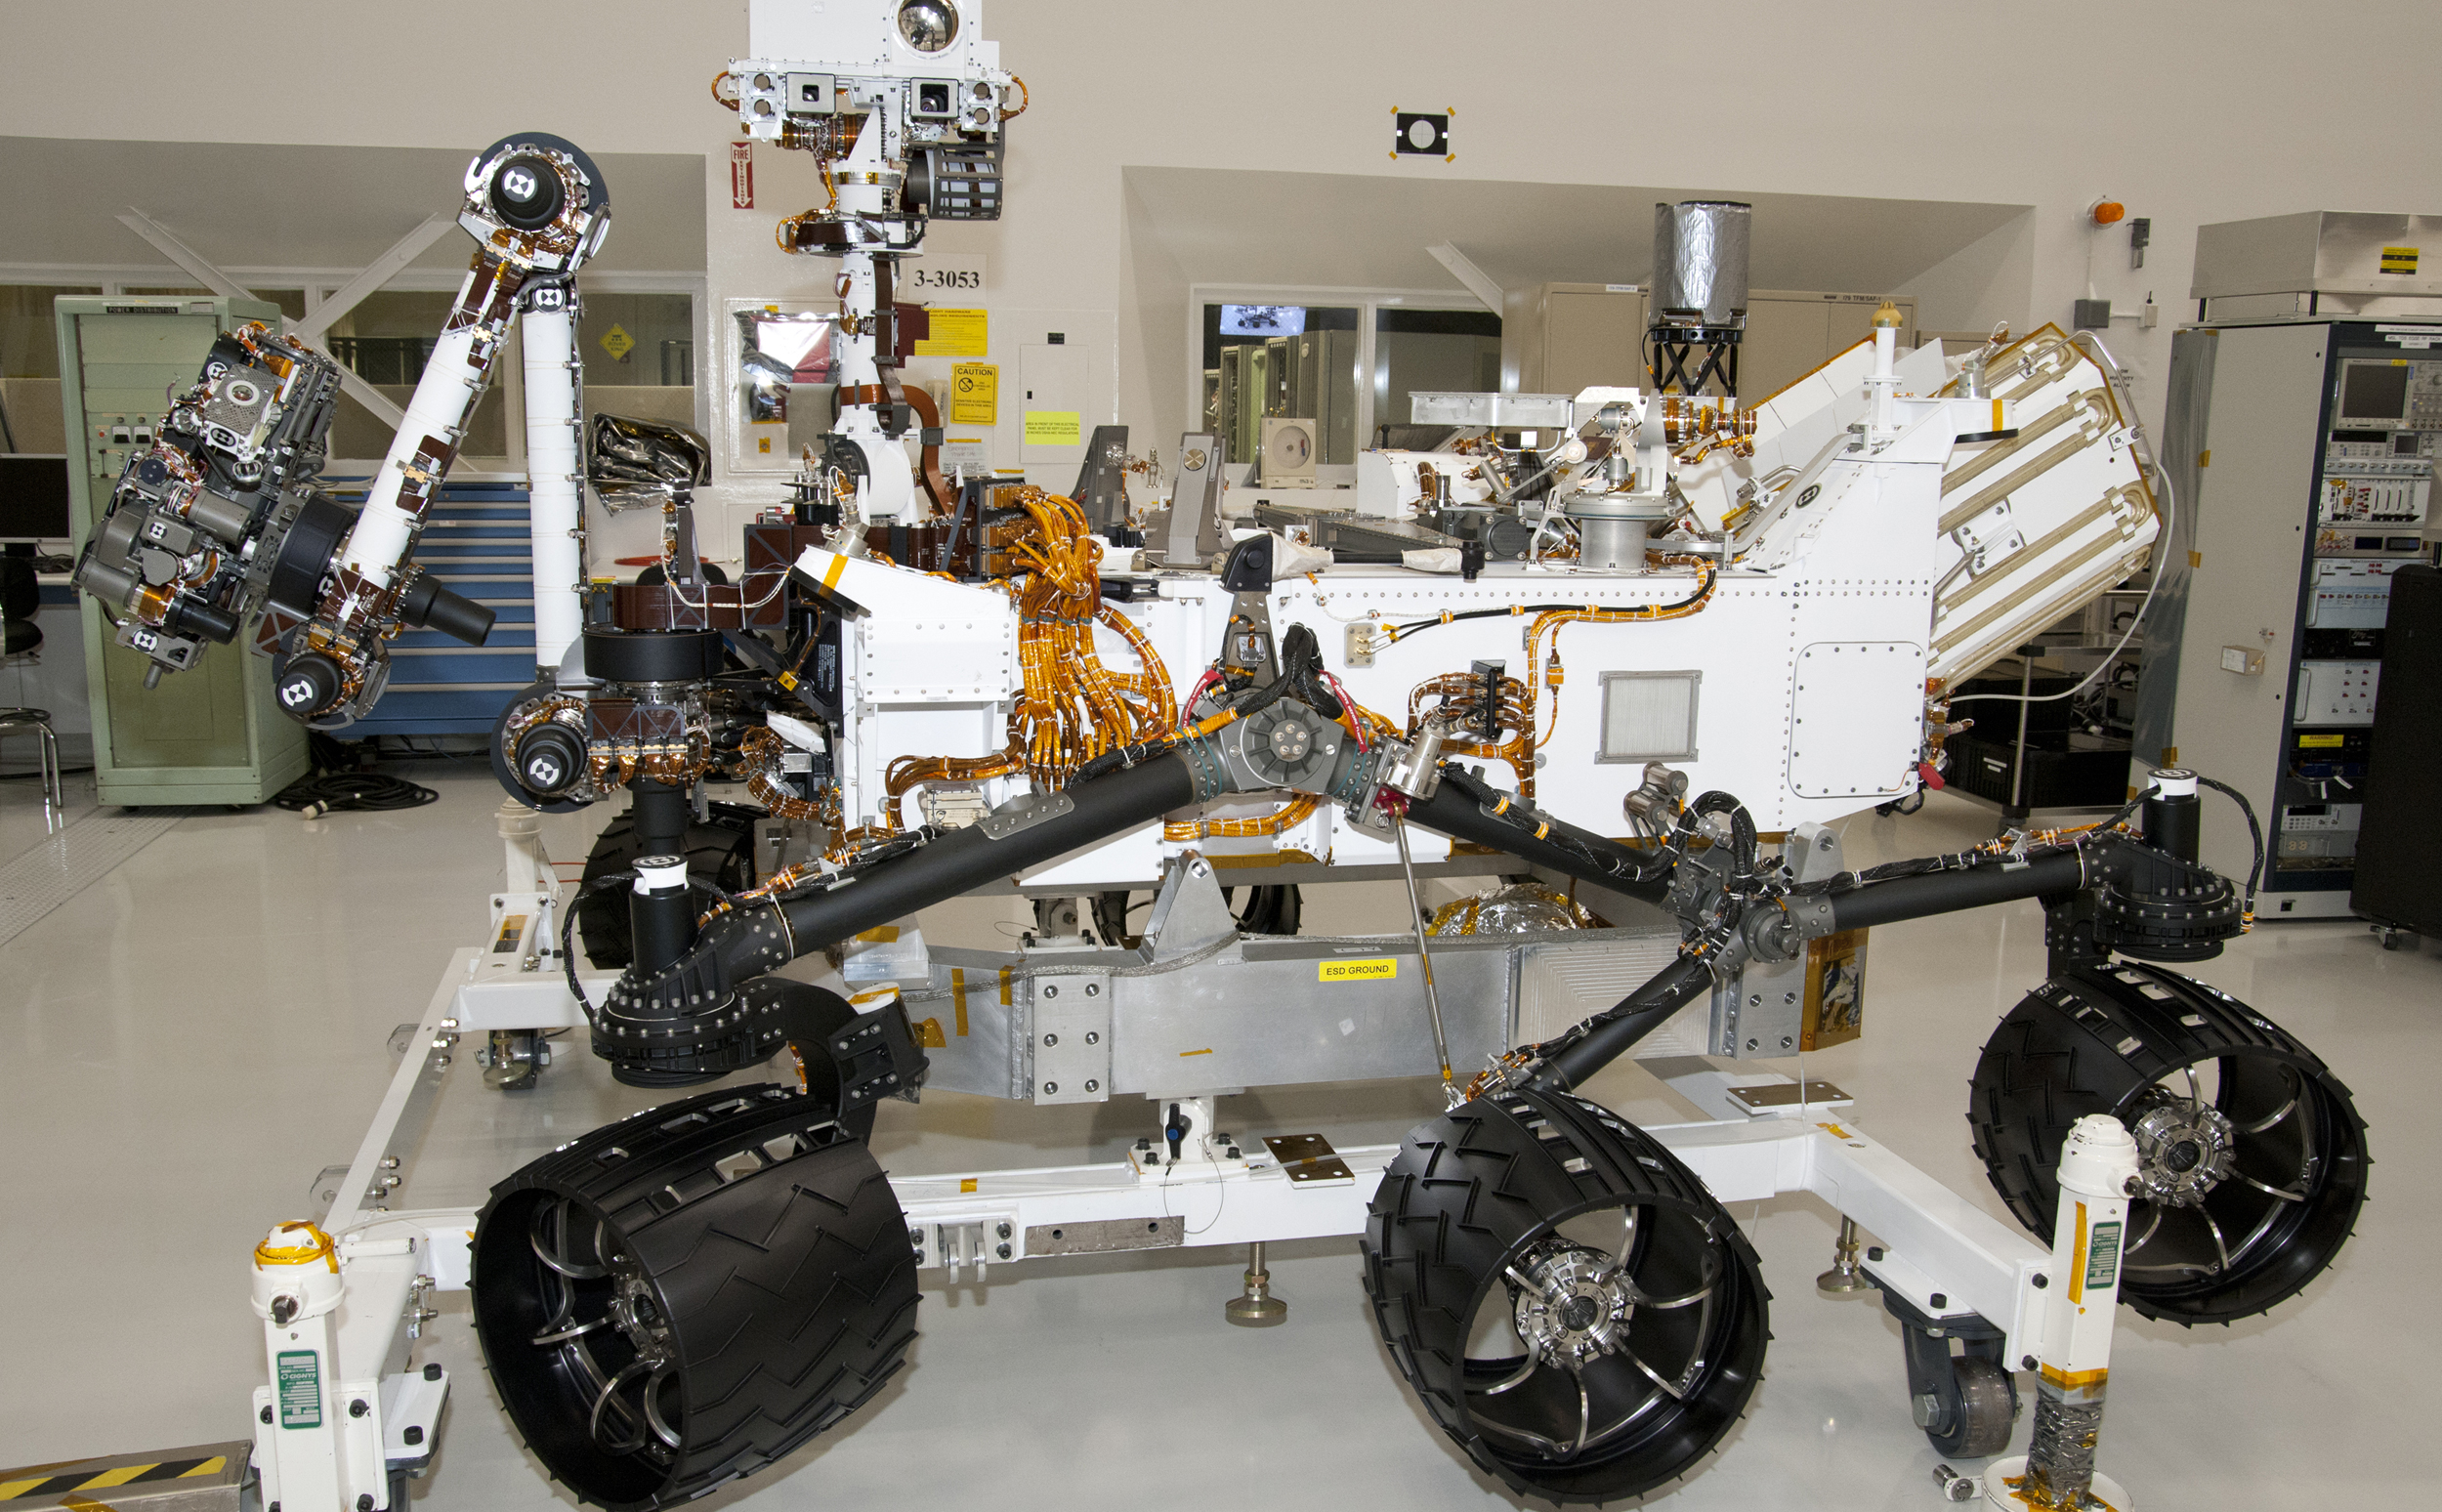 NASA Mars Rover Curiosity at JPL, Side View